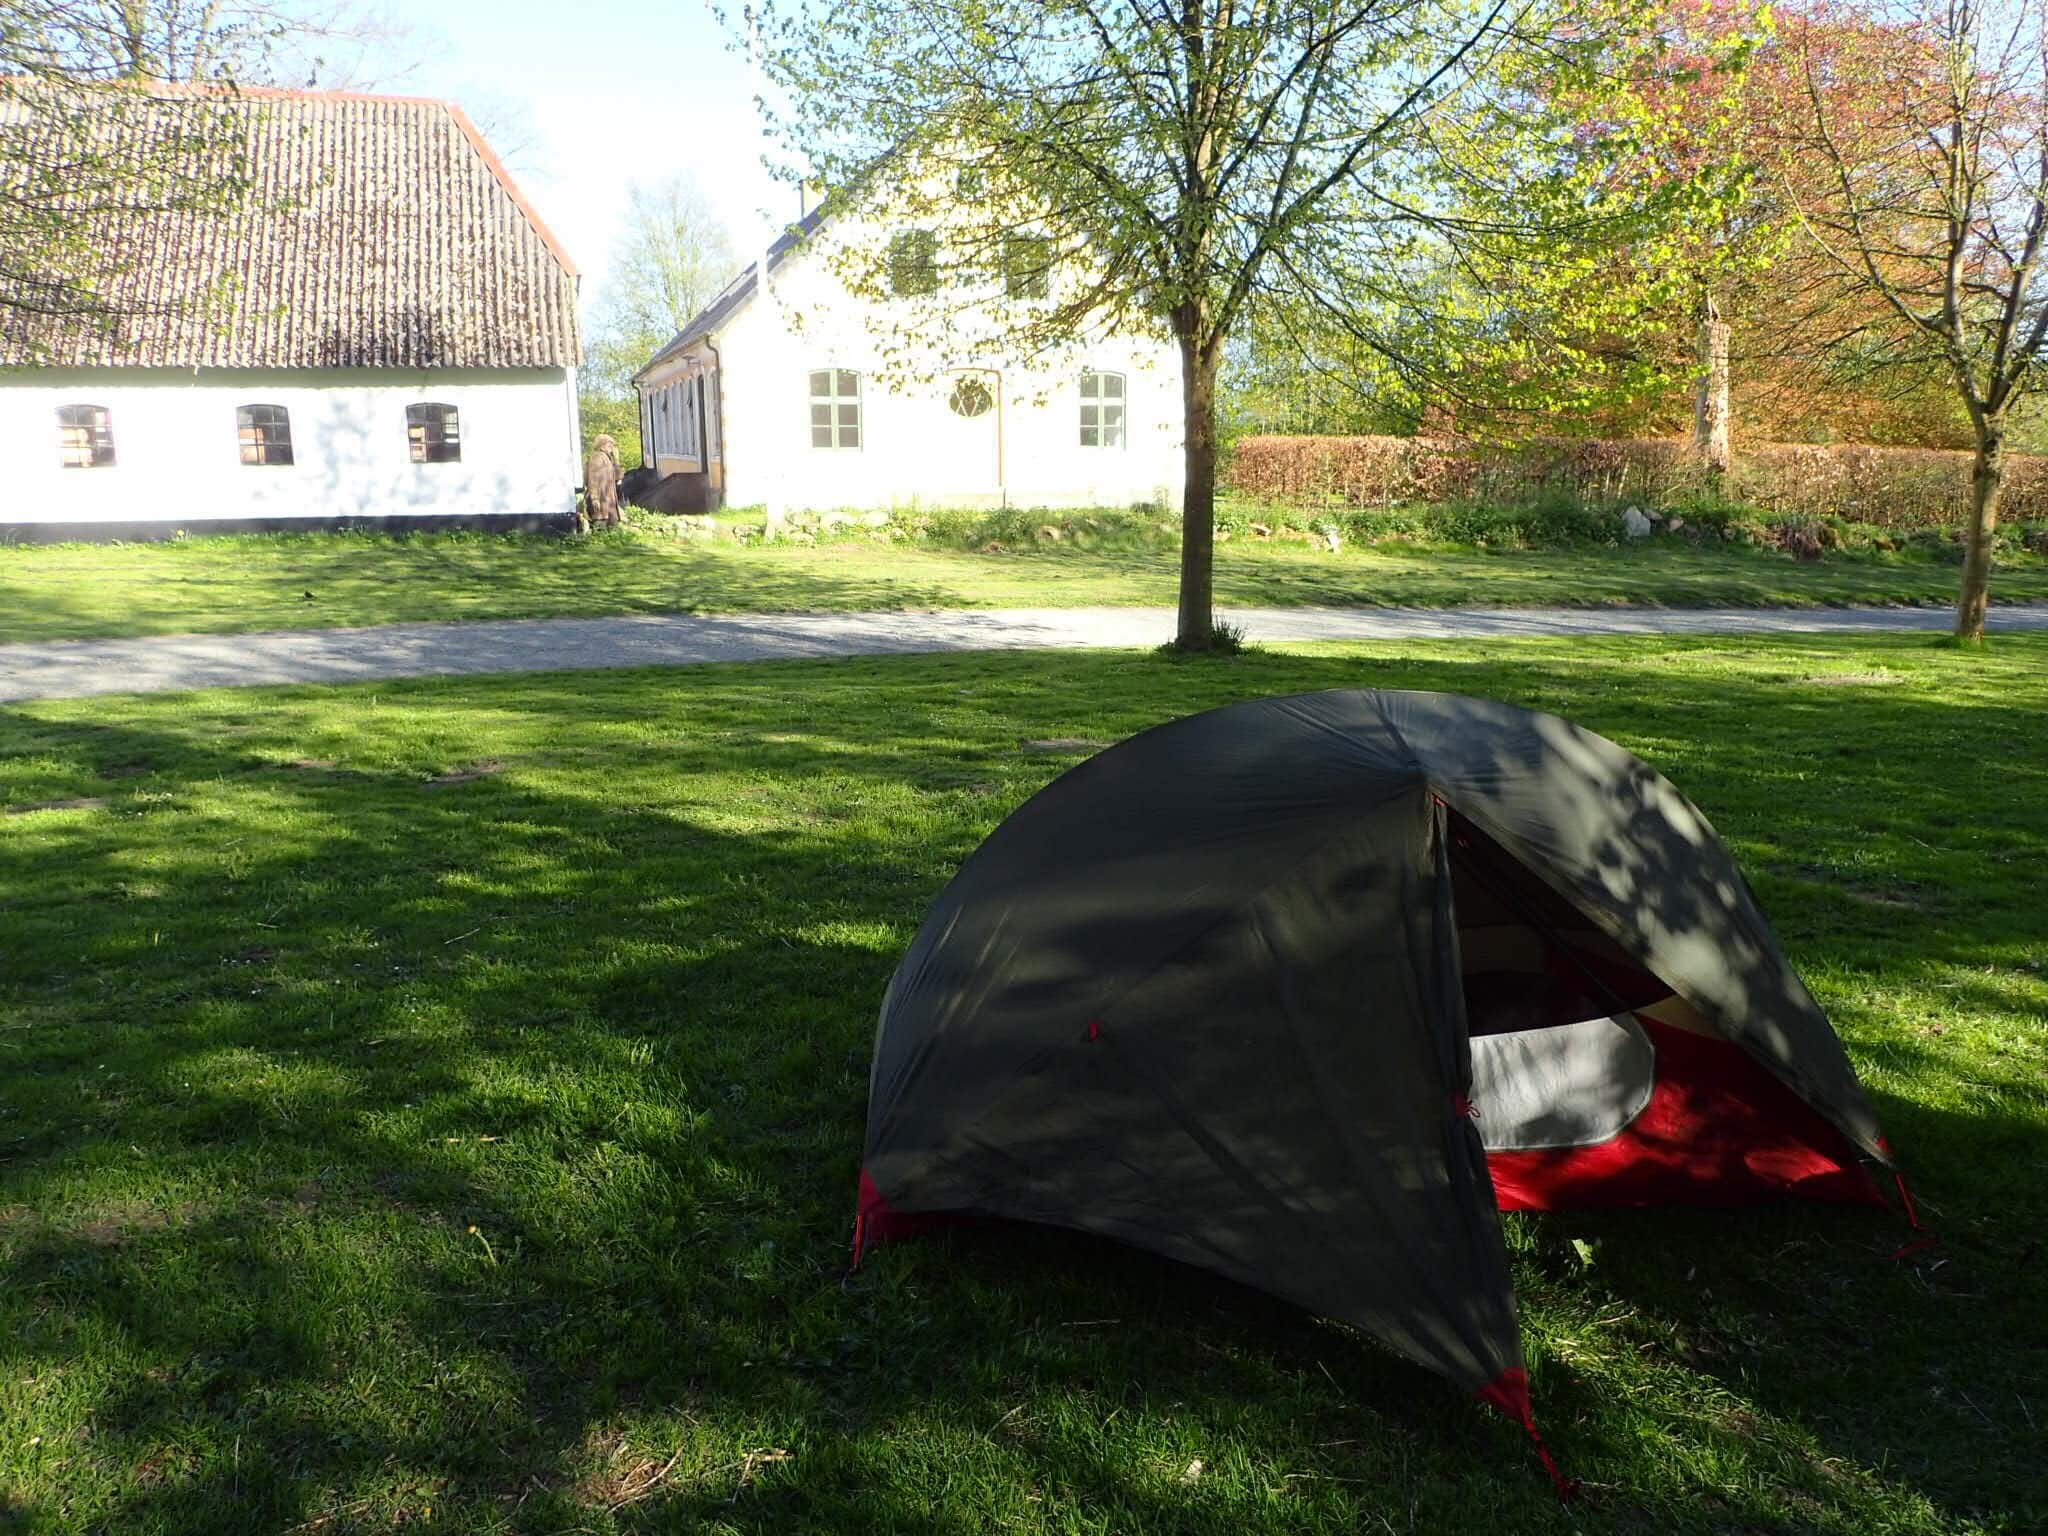 Campsite at Immervad Bro